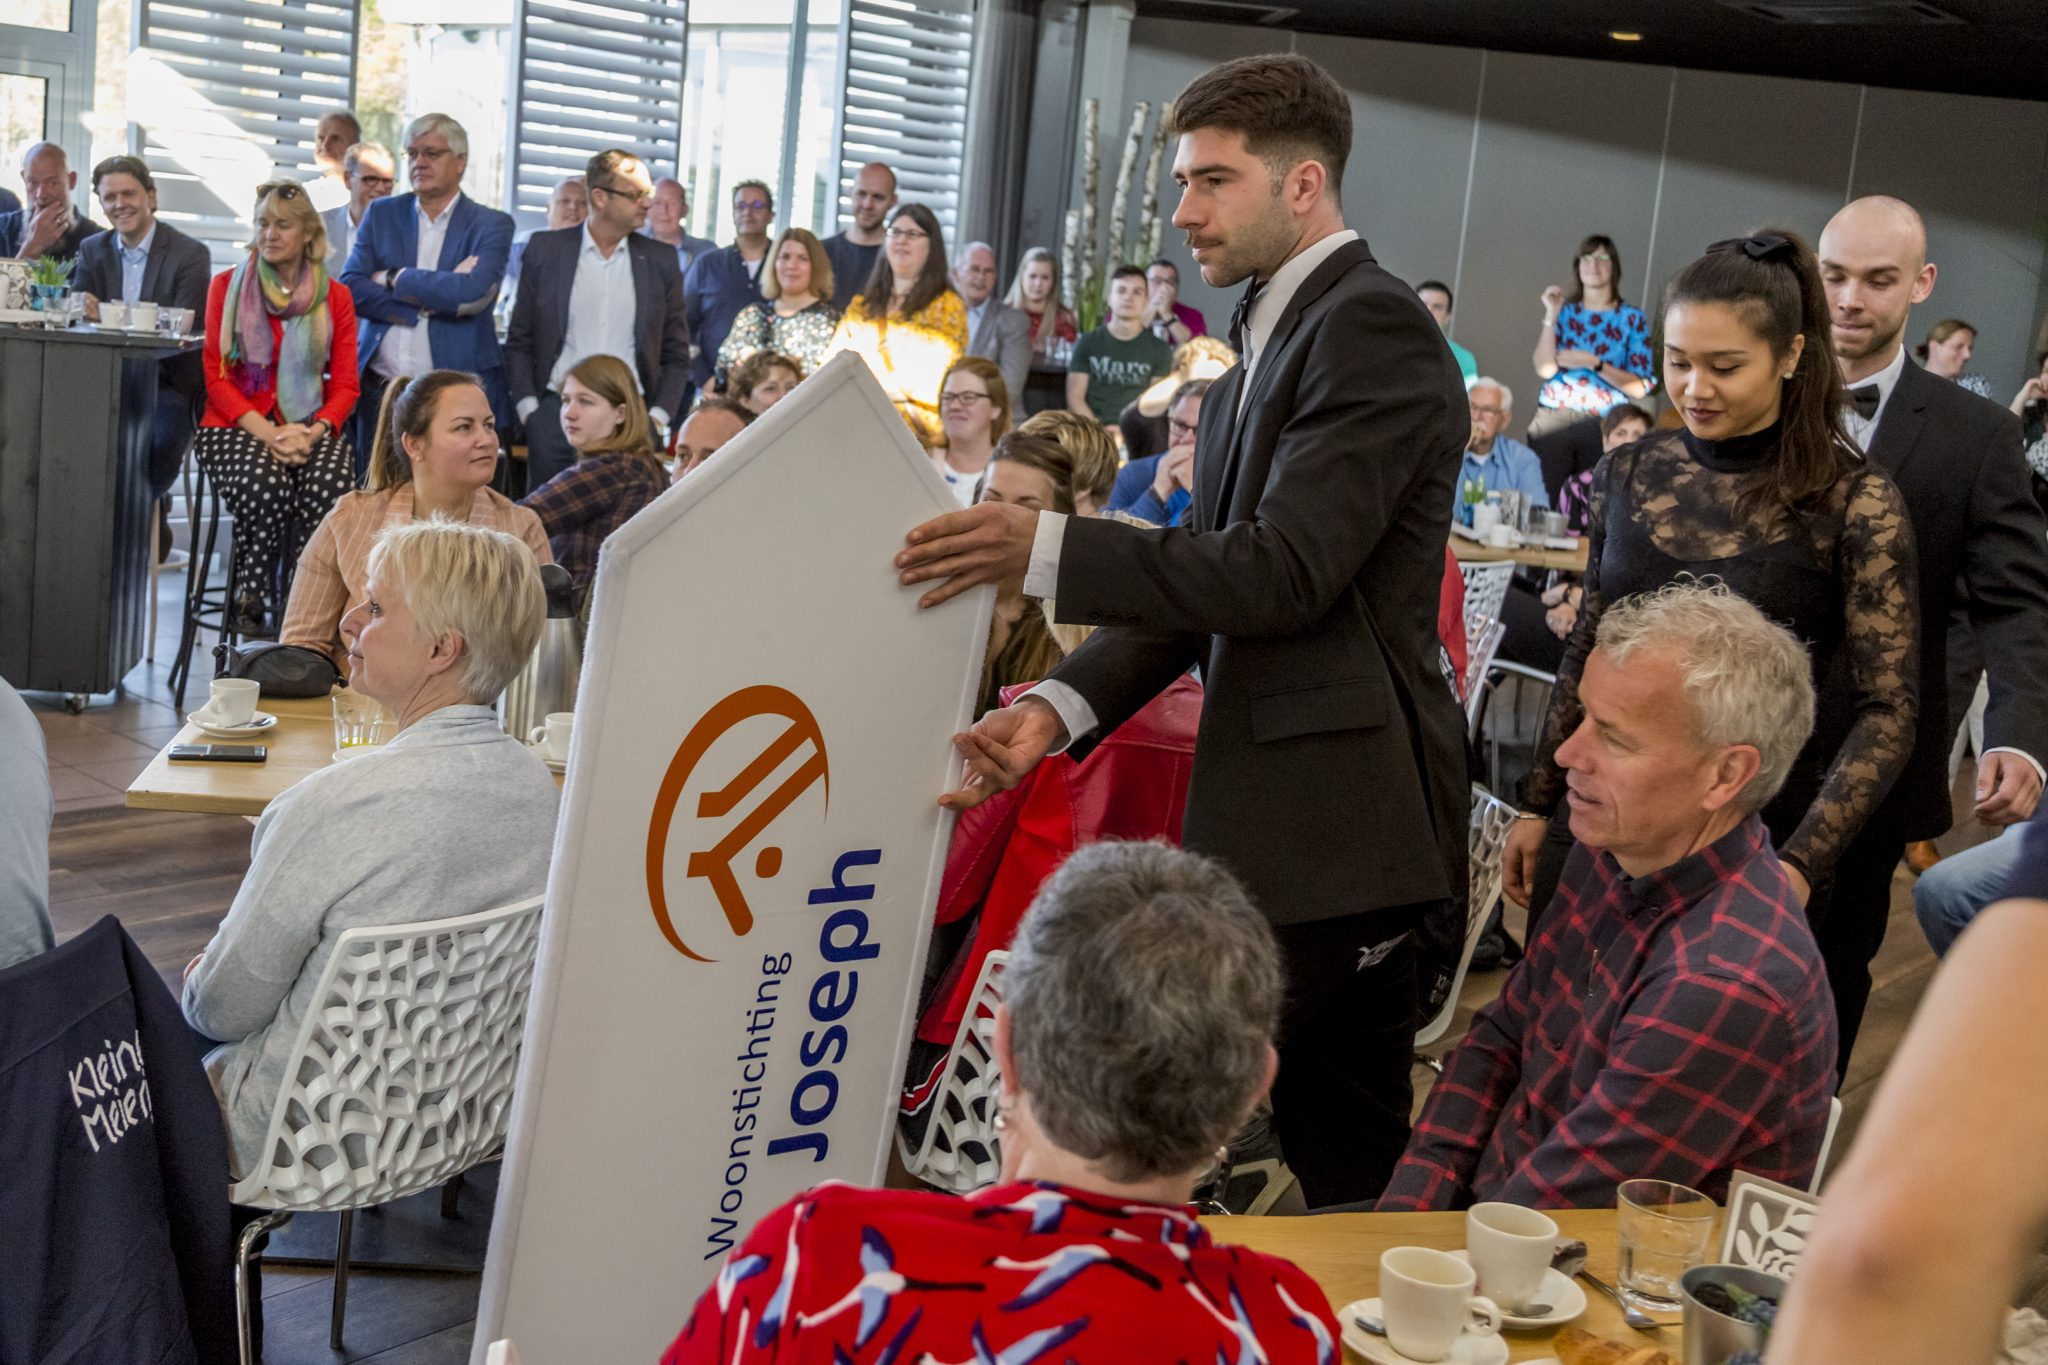 Onthulling_Joost_18april2019-16